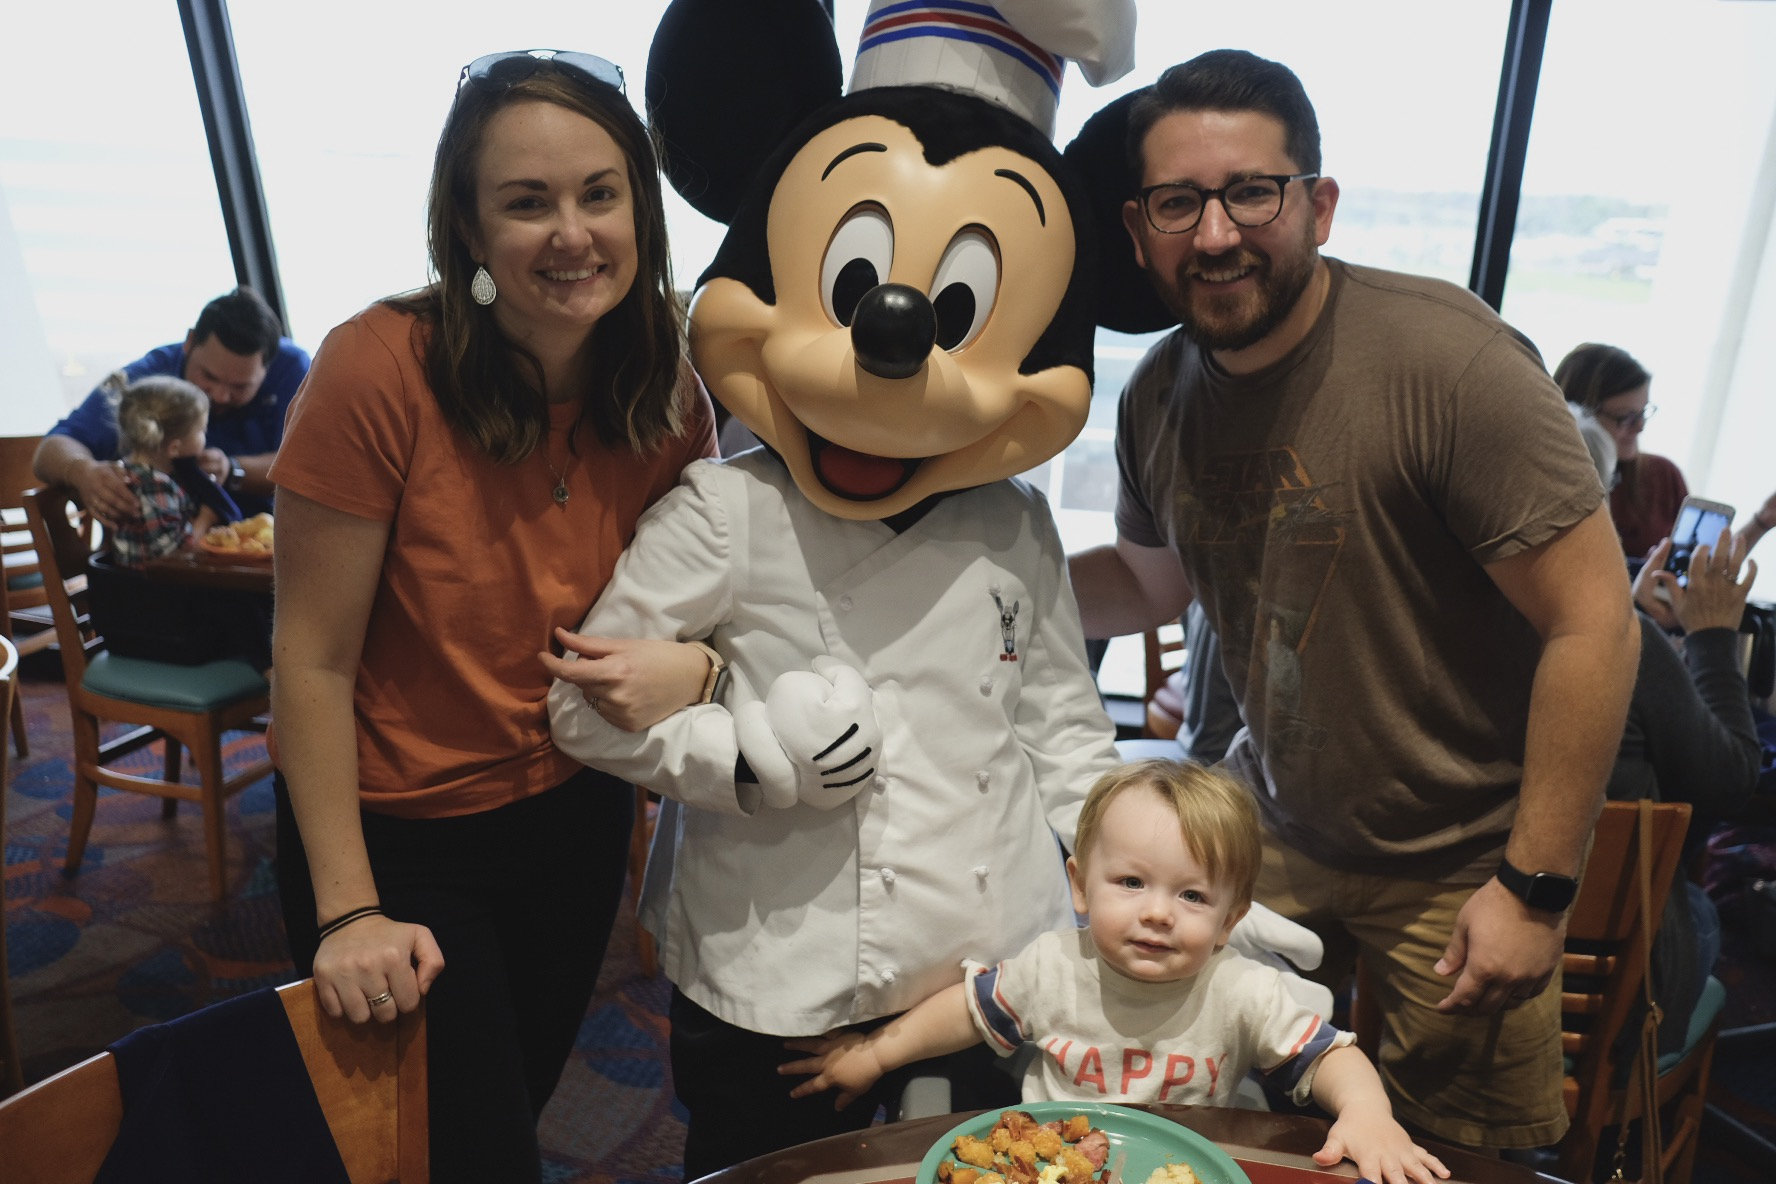 Our family at Disney World